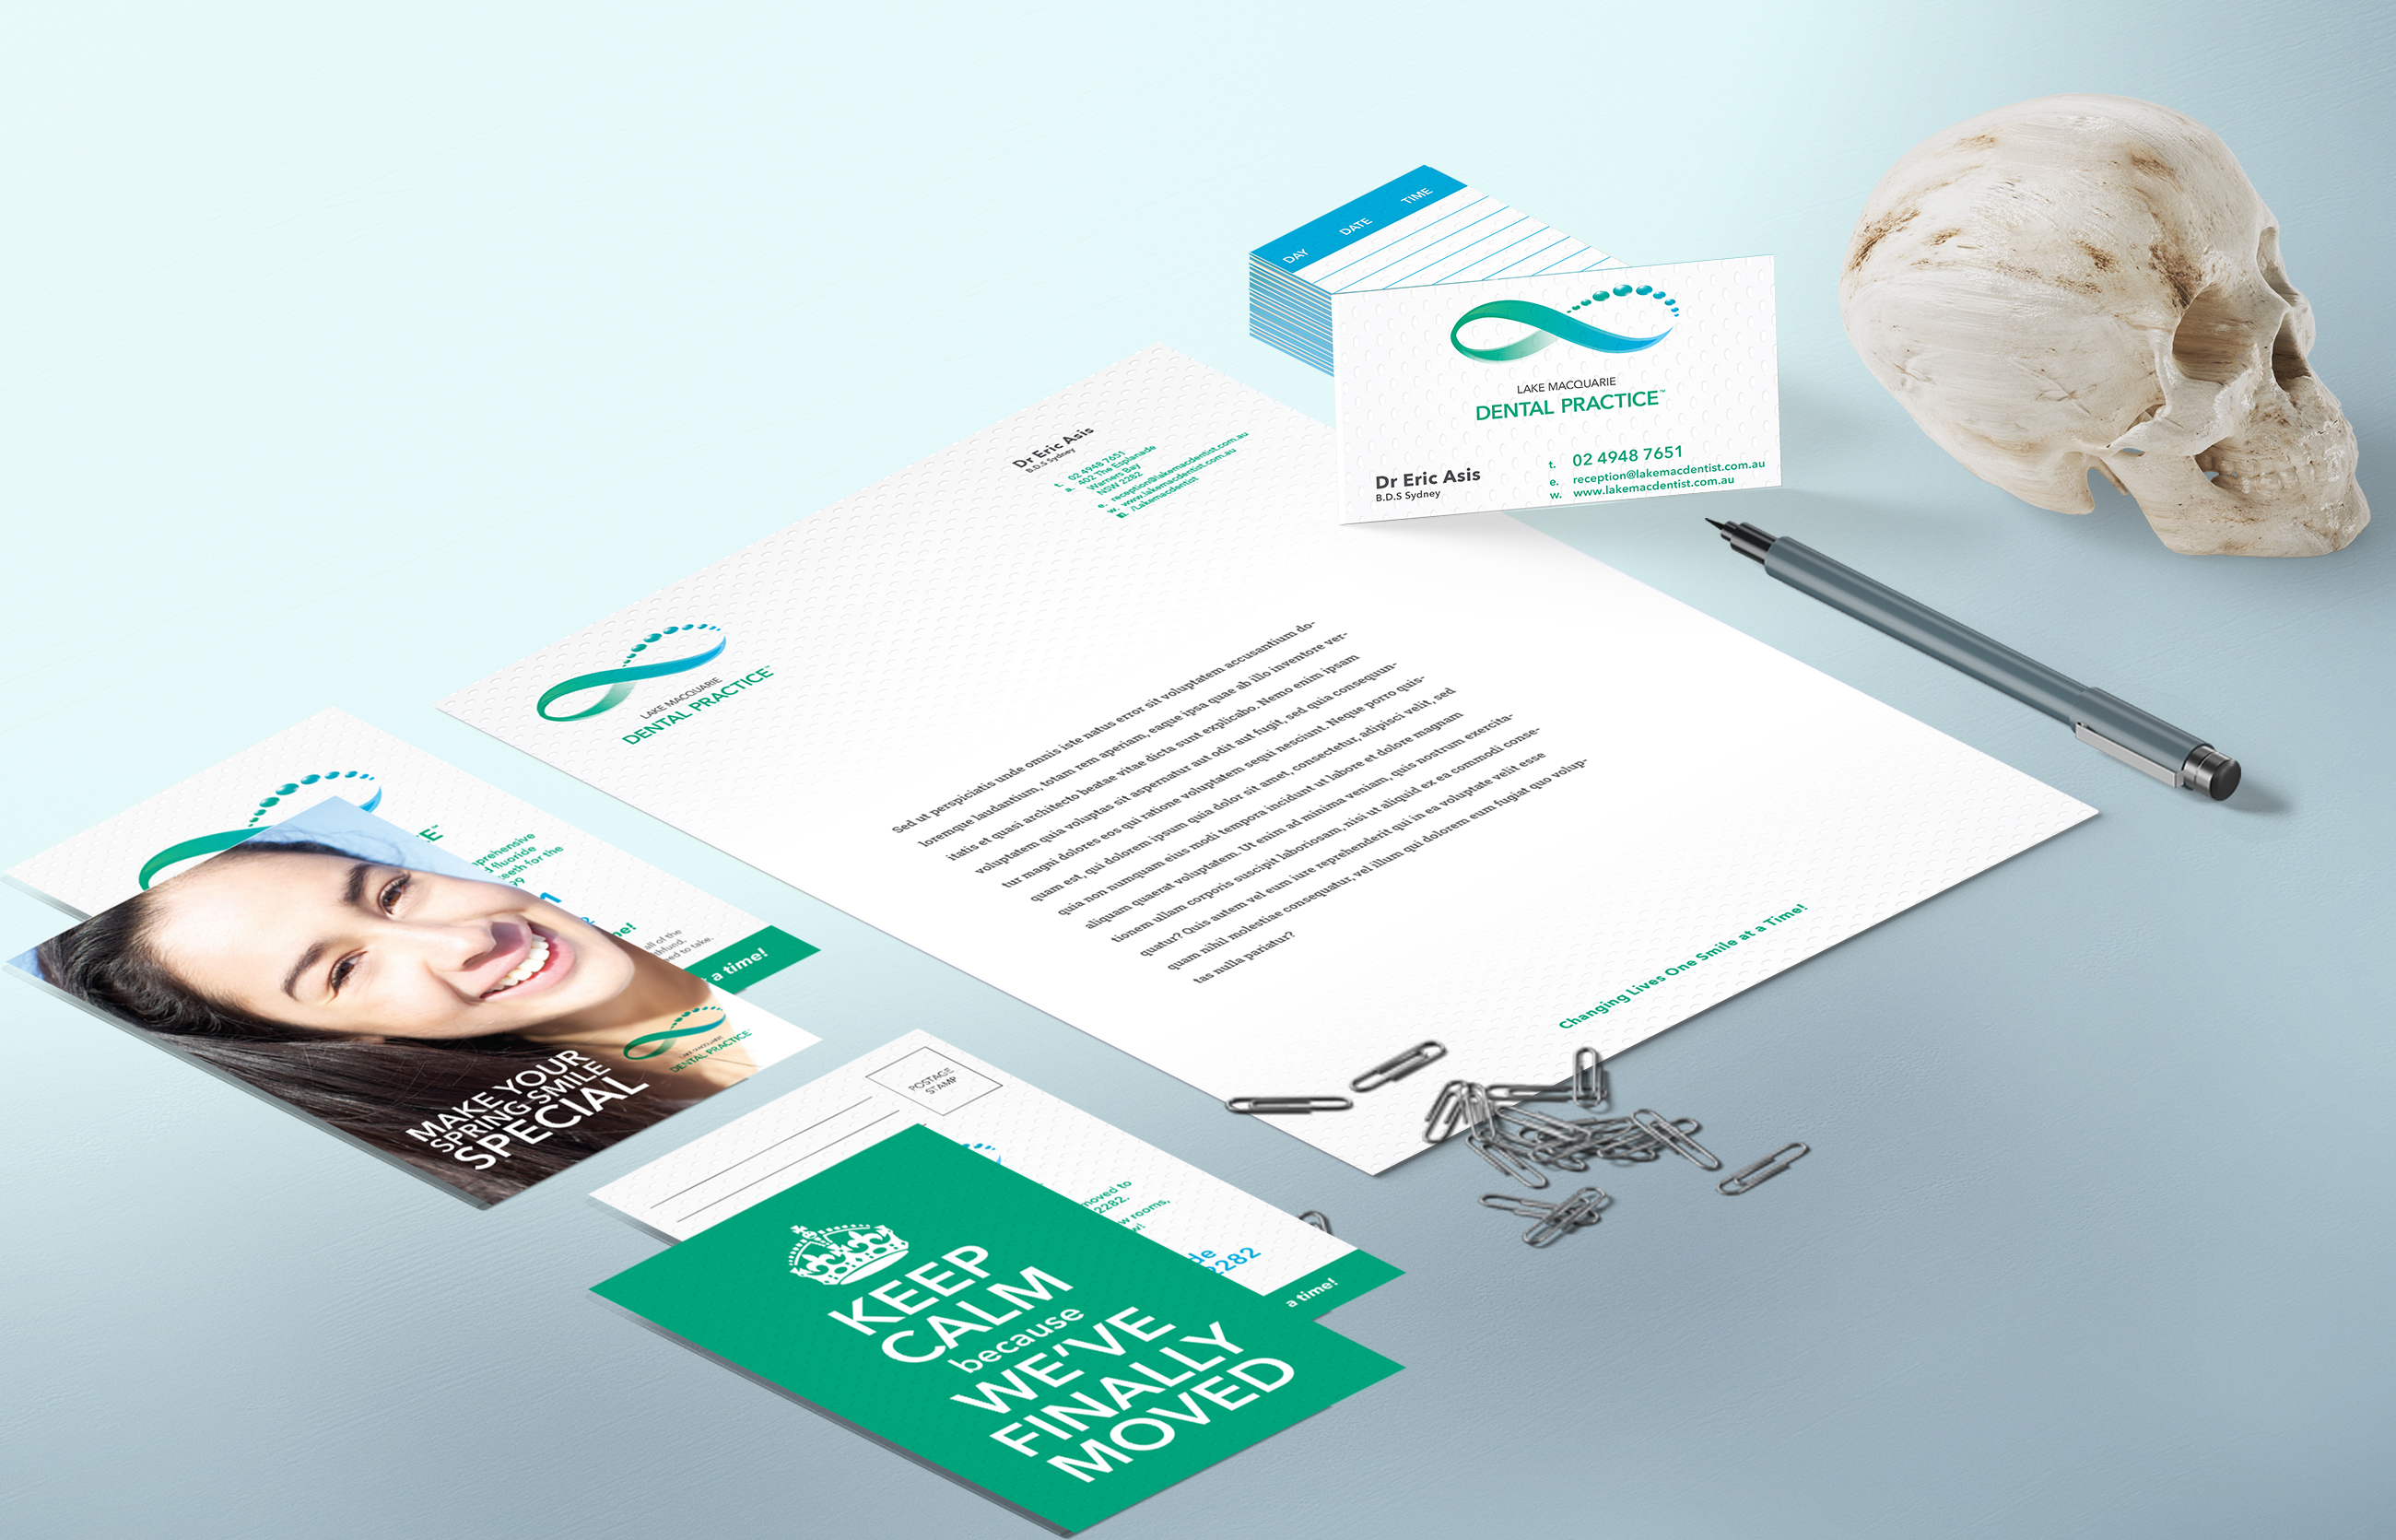 Lake Macquarie Dental Practice Stationery